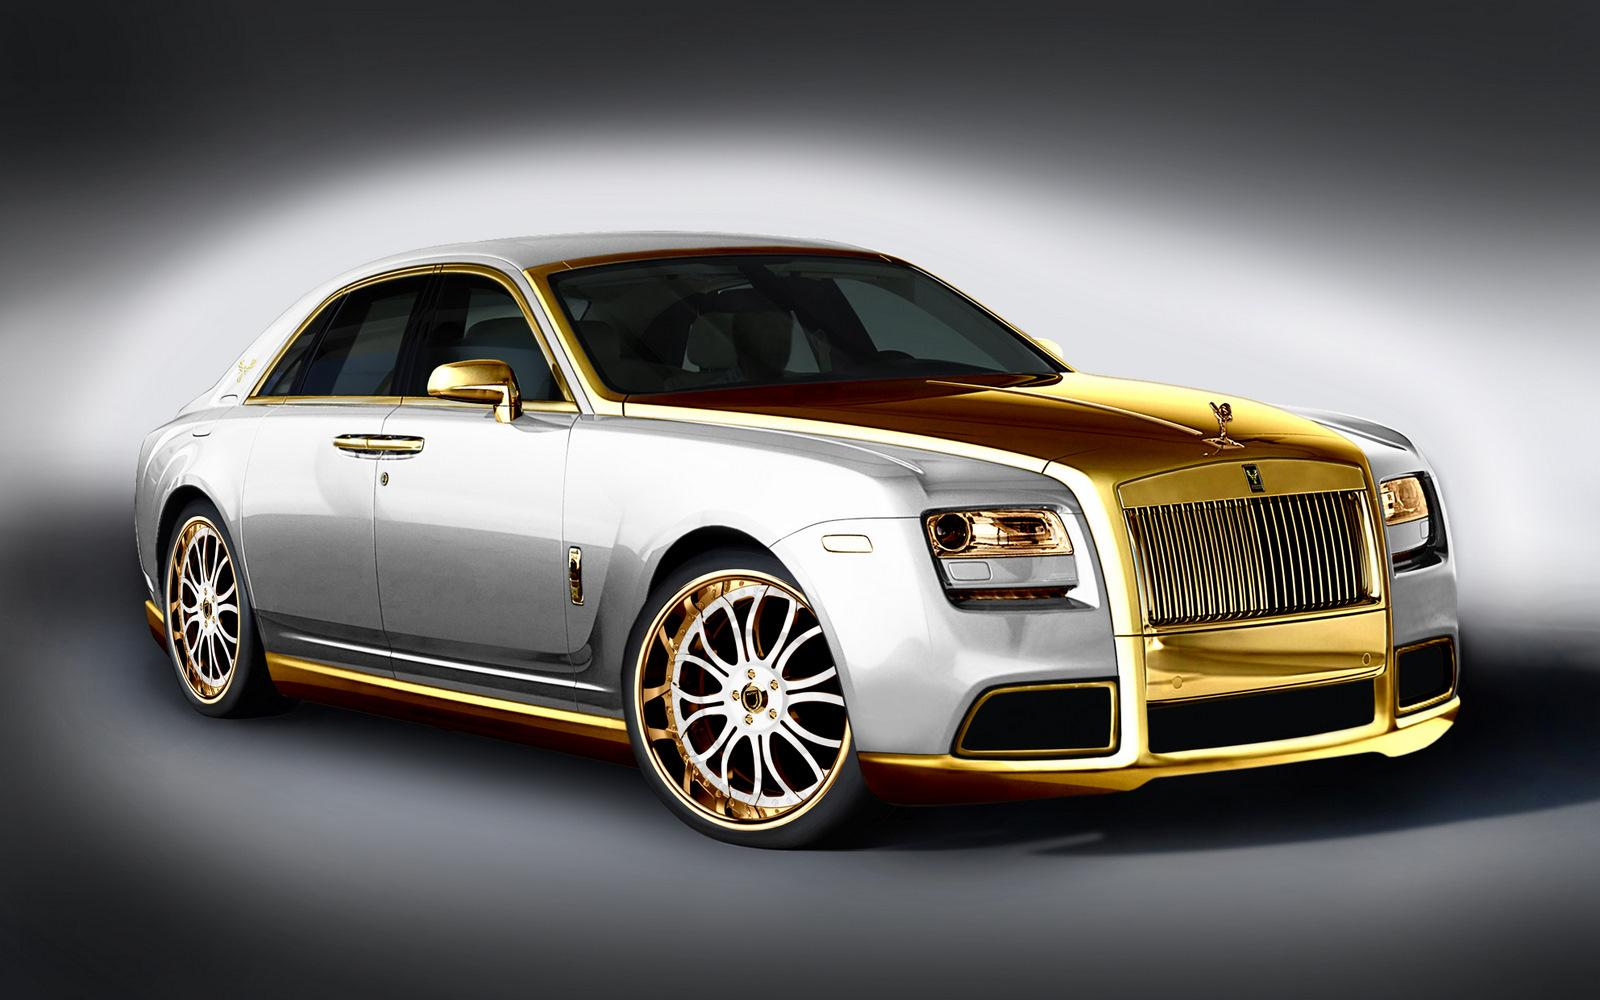 Fenice Milano Rolls Royce Ghost Picture 43556